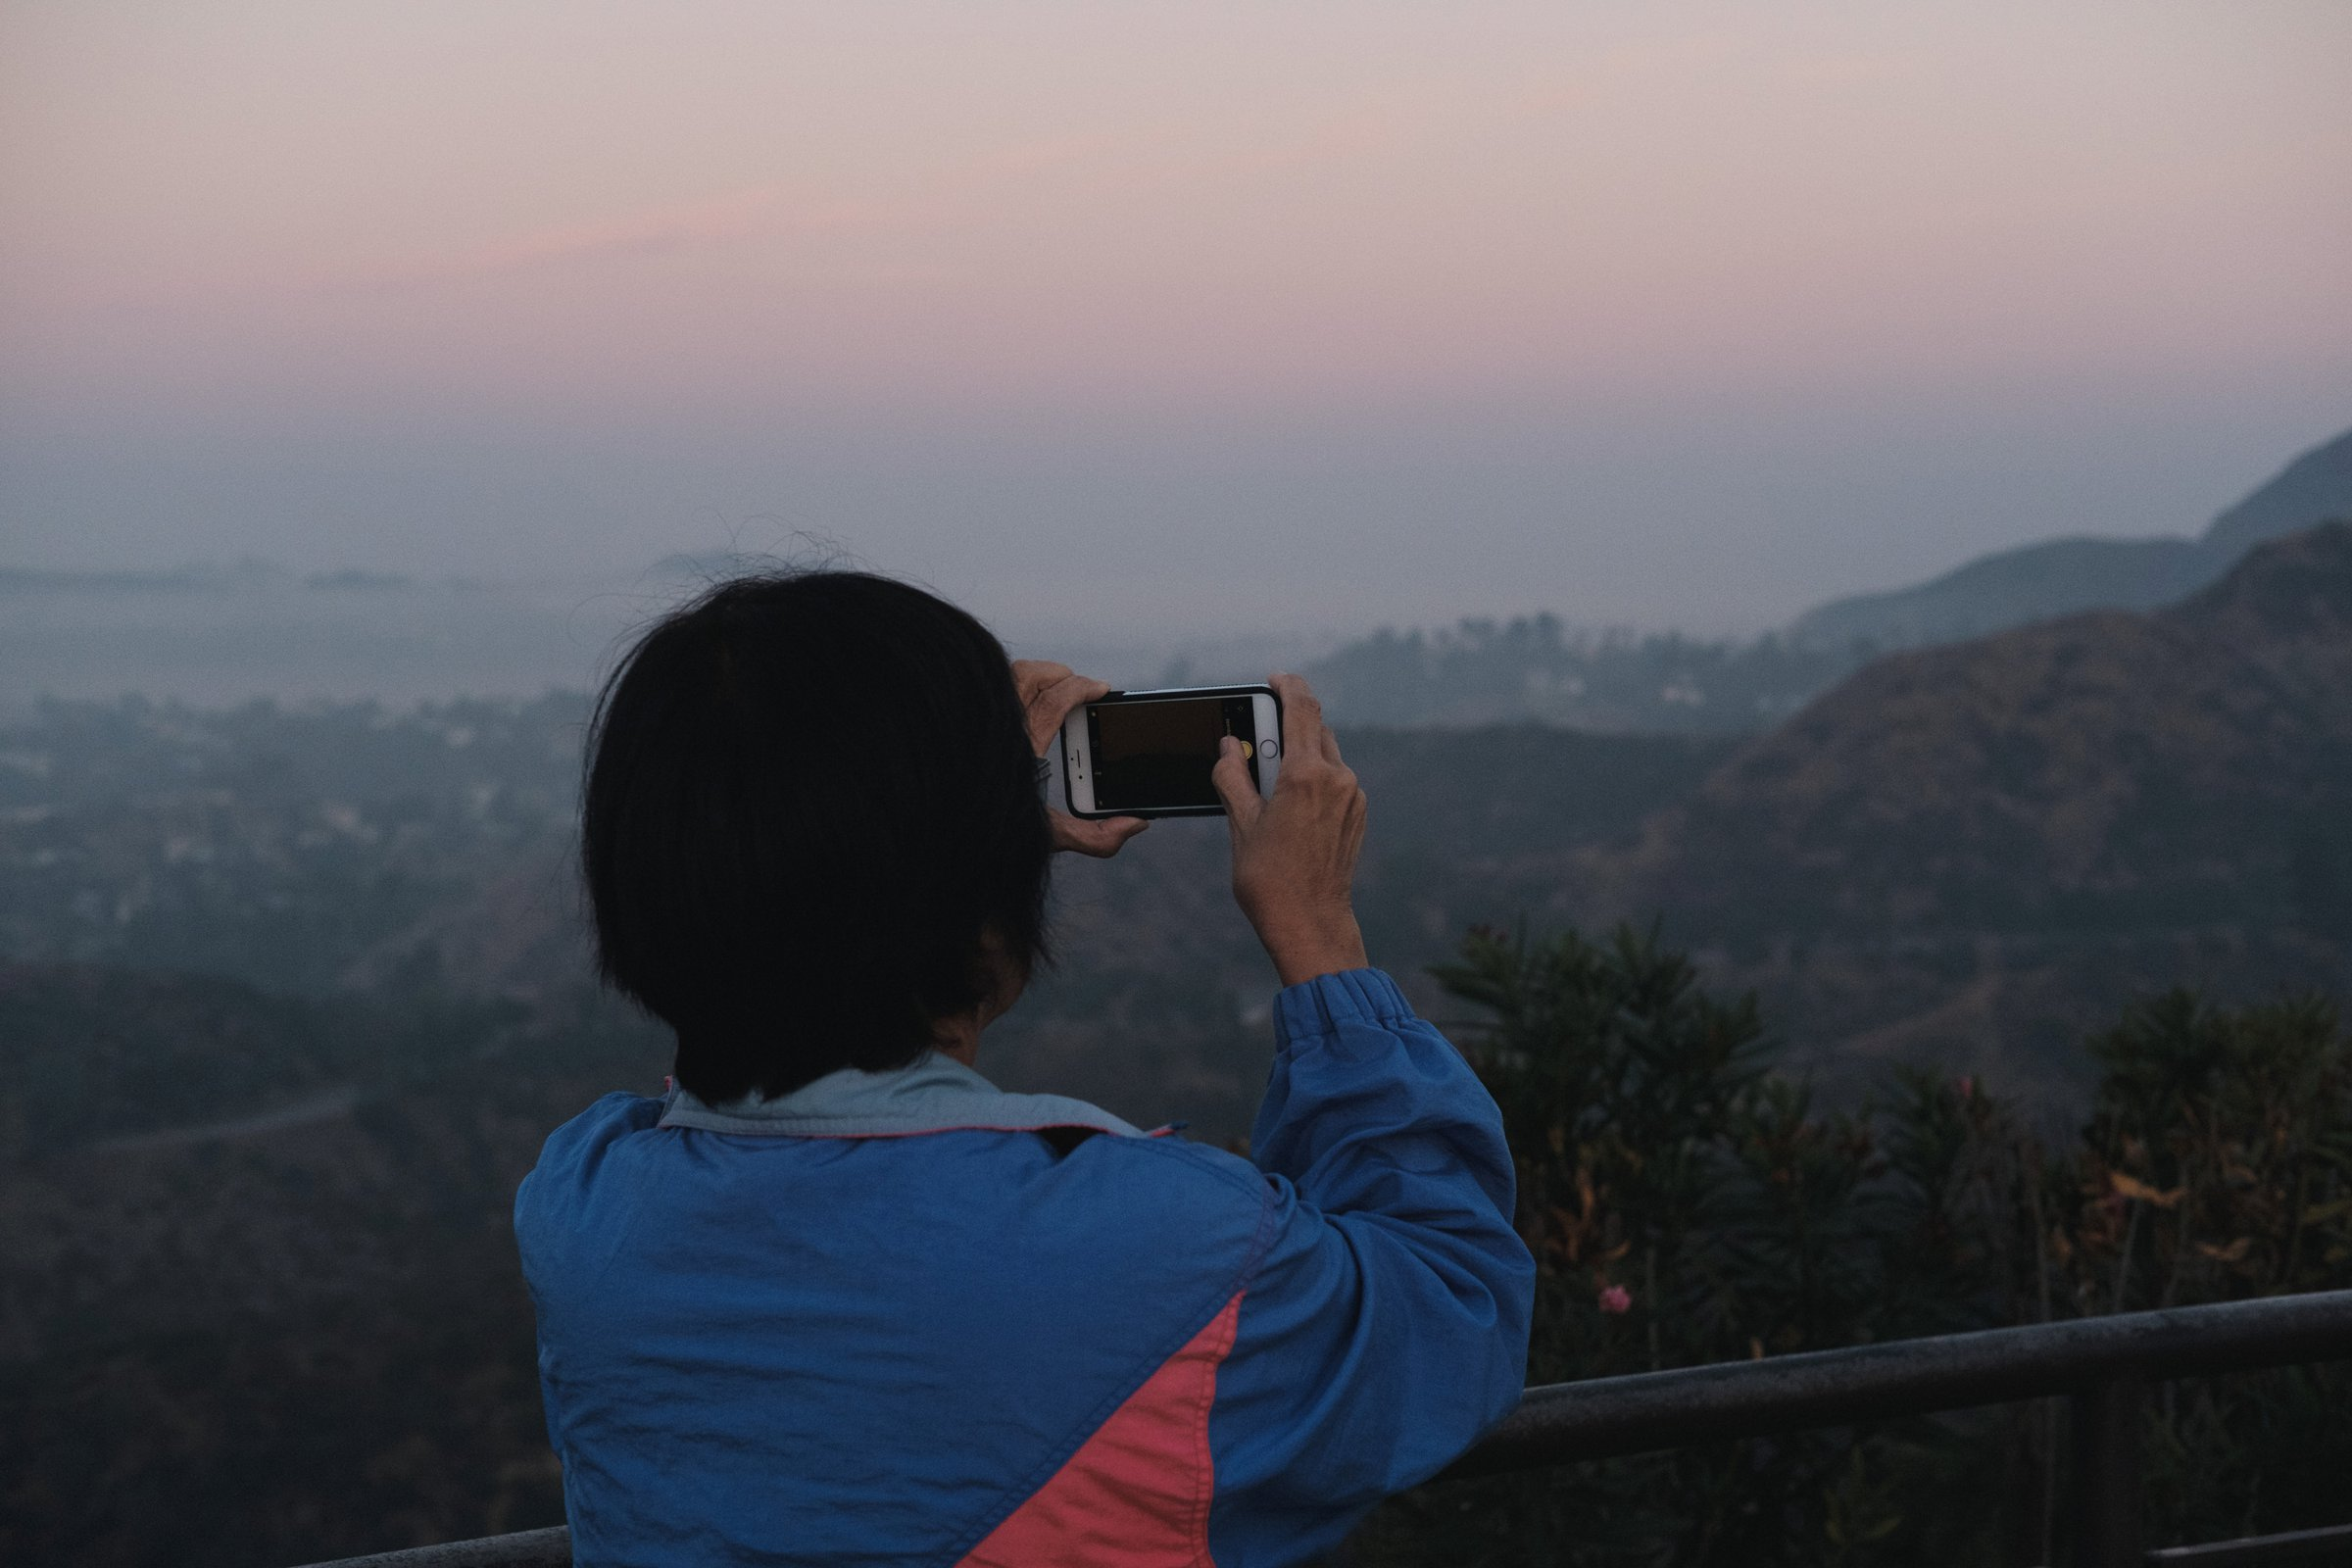 We weren't the only ones taking in the view of the Hollywood sign.